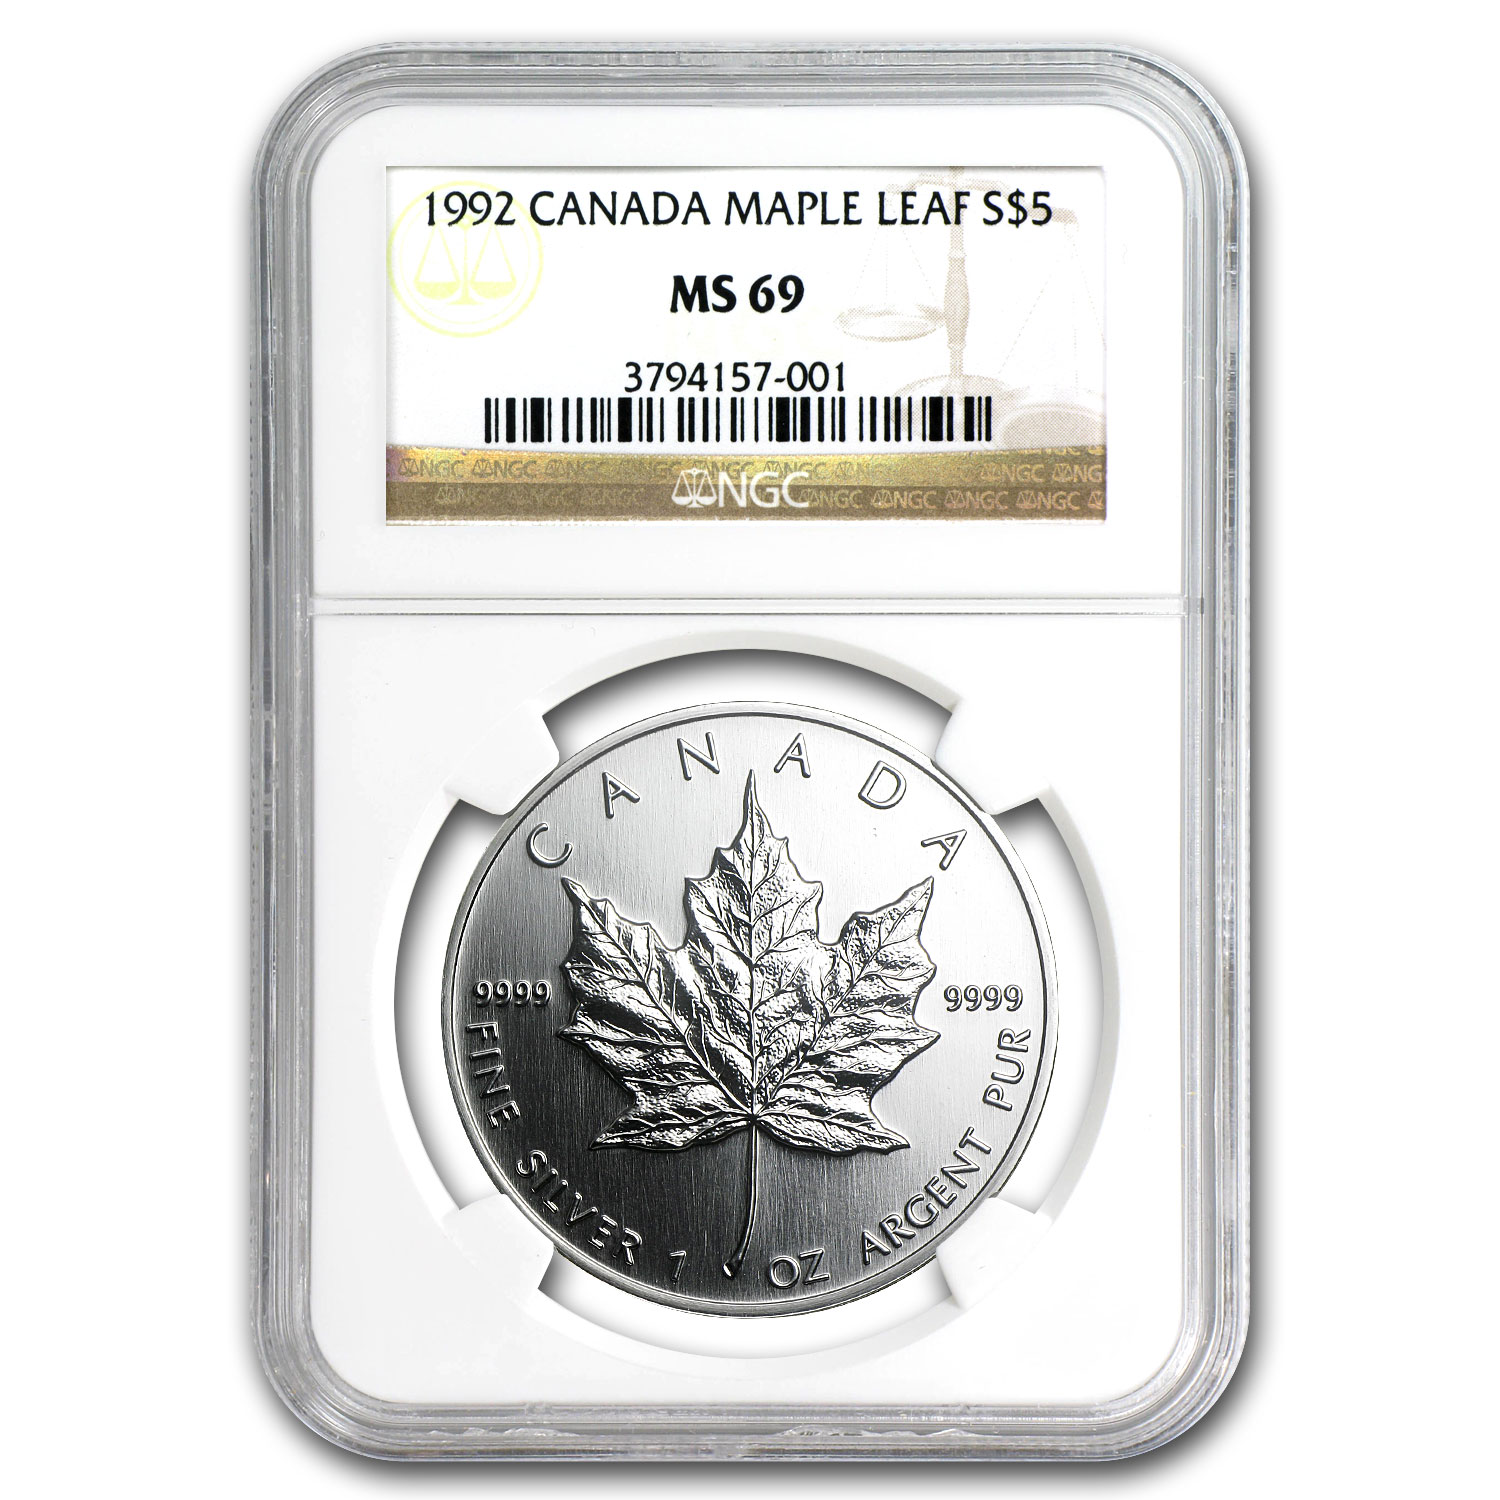 1992 1 oz Silver Canadian Maple Leaf MS-69 NGC